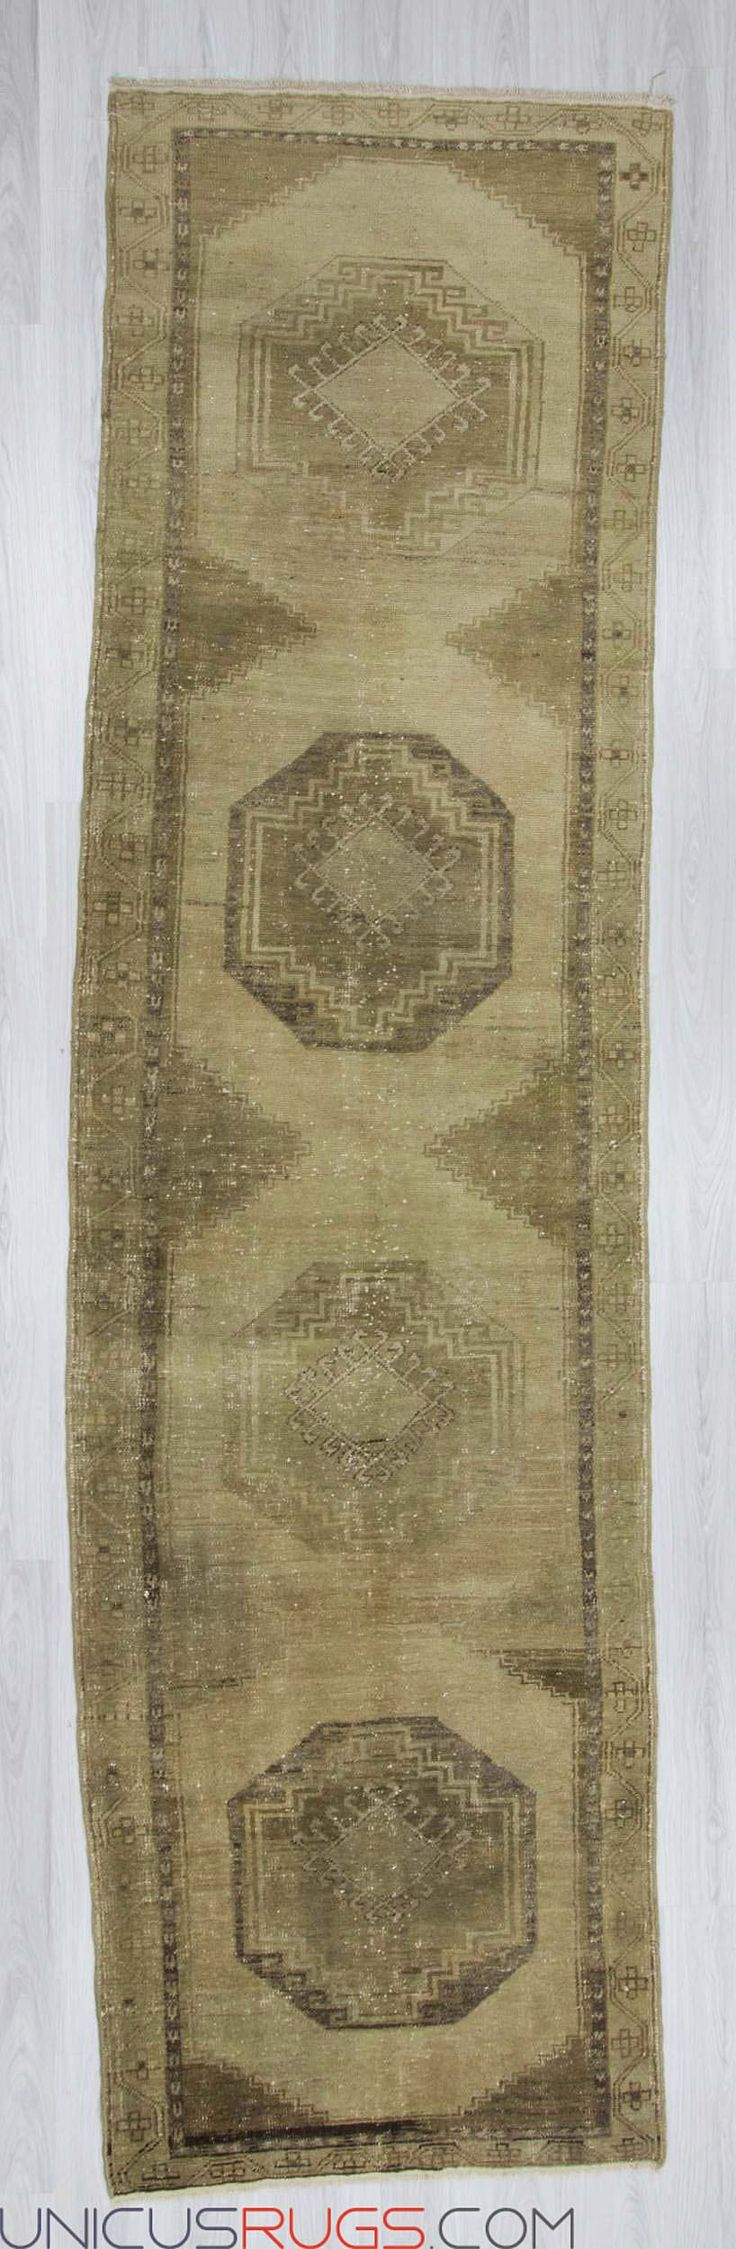 """Vintage washed out runner rug from Malatya region of Turkey. In good condition. Approximately 55-65 years old. Width: 3' 8"""" - Length: 13' 5"""" RUNNERS"""